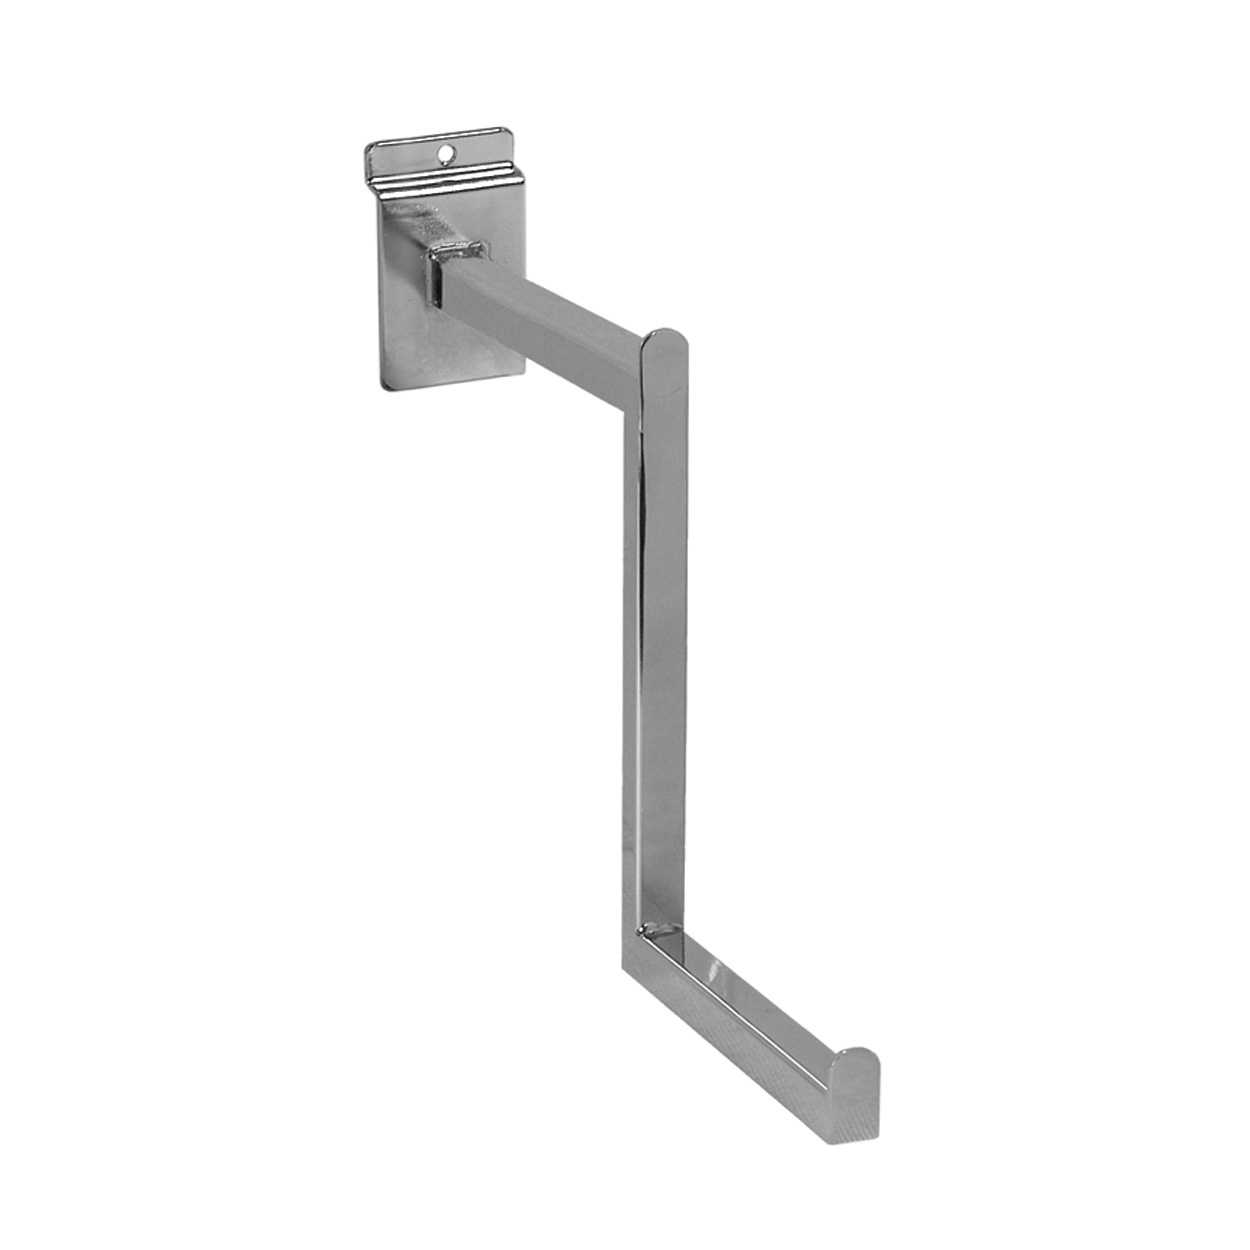 Stepped Arm 375mm L